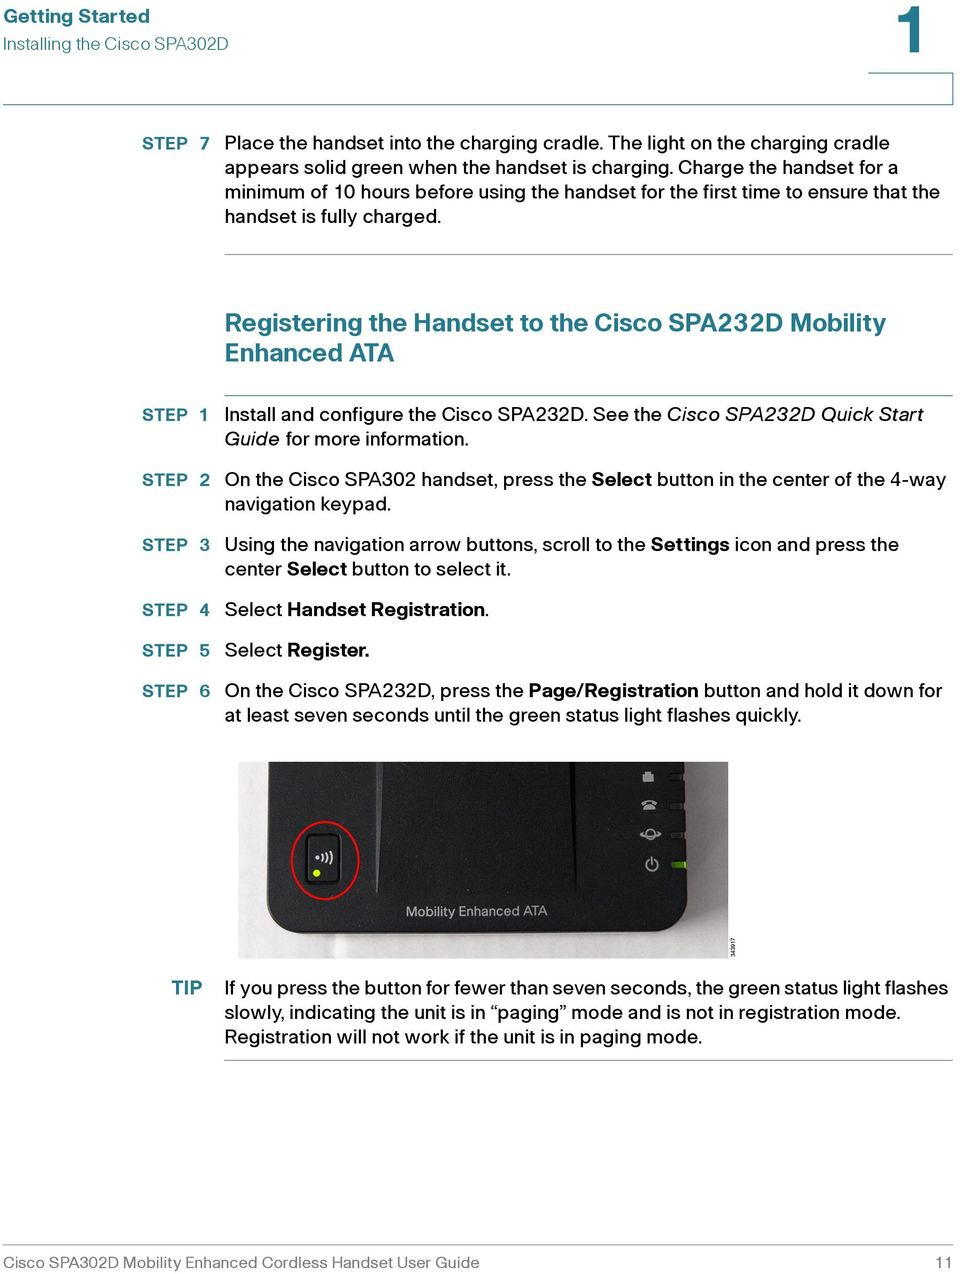 Registering the Handset to the Cisco SPA3D Mobility Enhanced ATA STEP 4 STEP 5 STEP 6 Install and configure the Cisco SPA3D. See the Cisco SPA3D Quick Start Guide for more information.